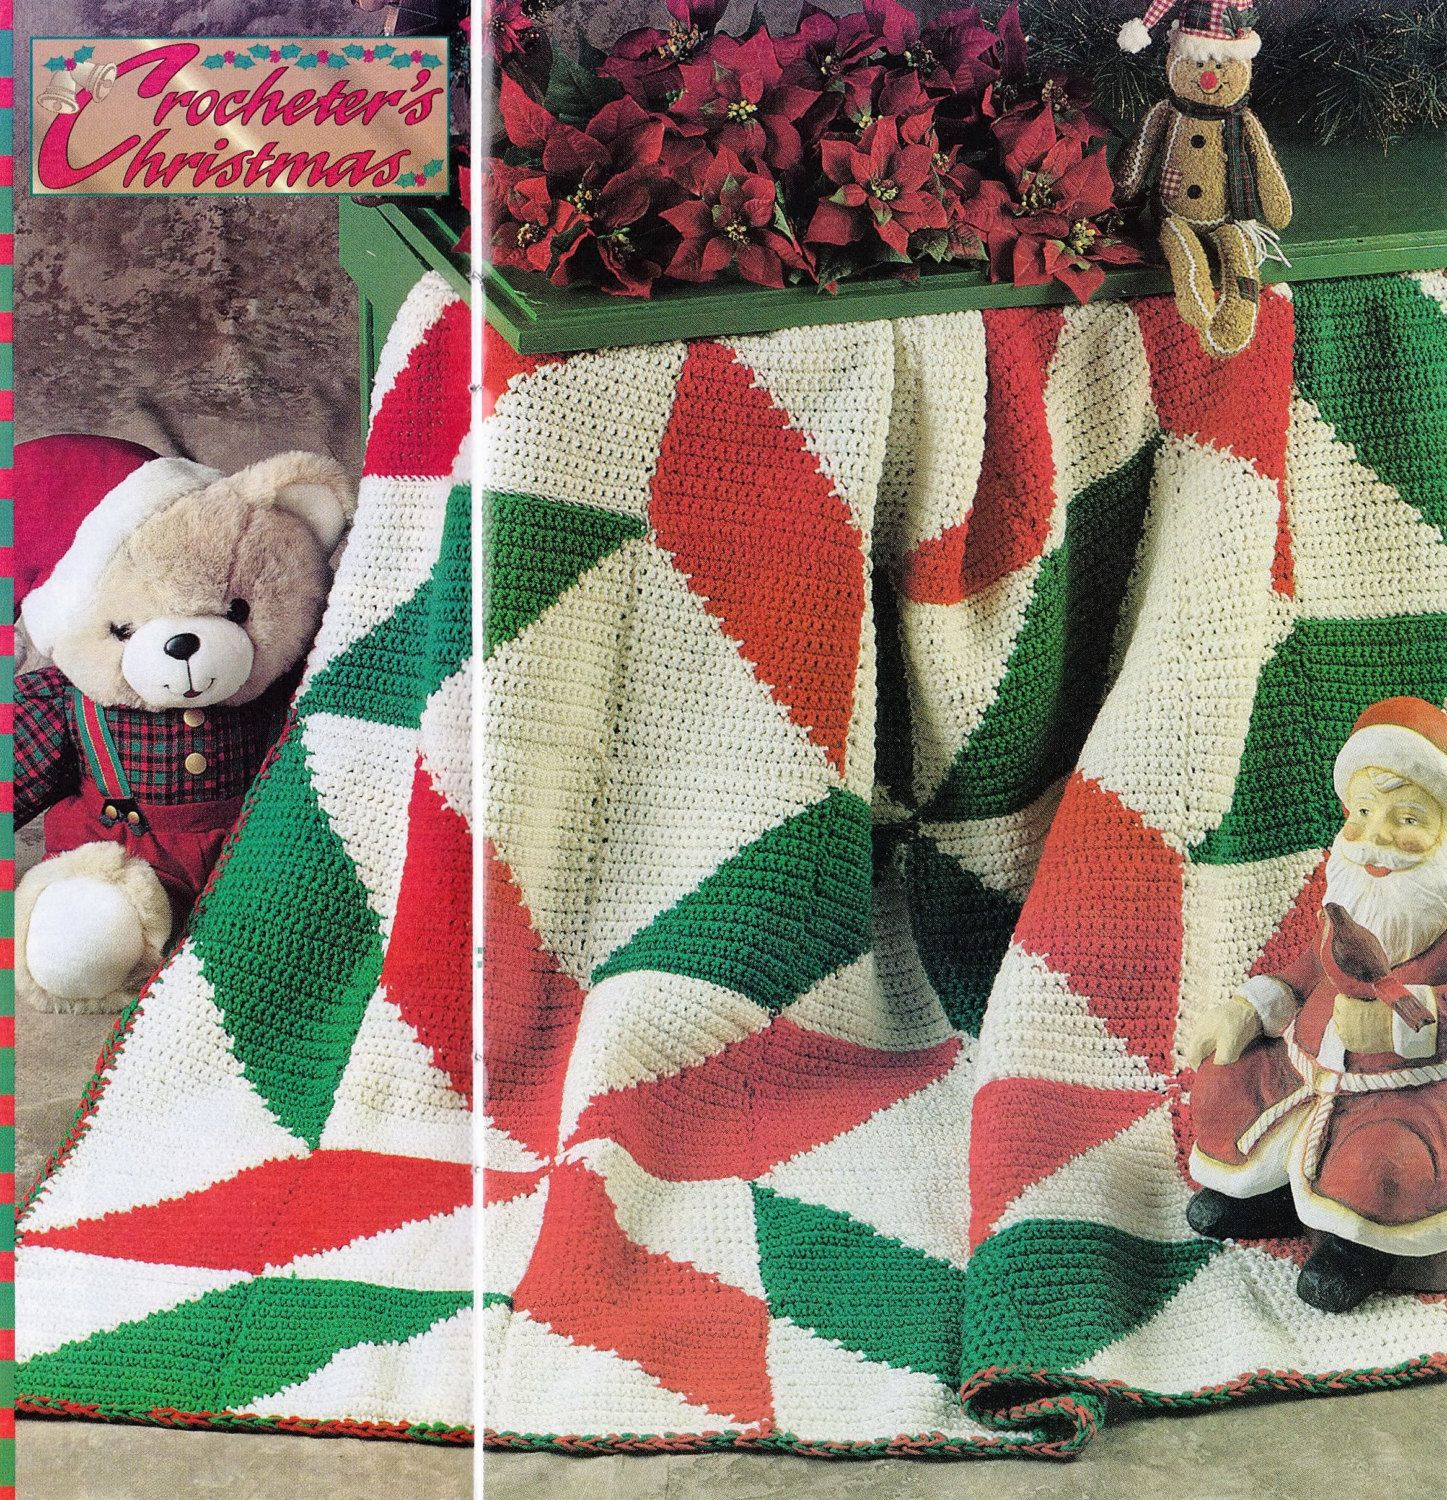 Crochet Christmas Holiday Poinsettia Afghan Pattern - PDF Dowload by PatternsforHome on Etsy